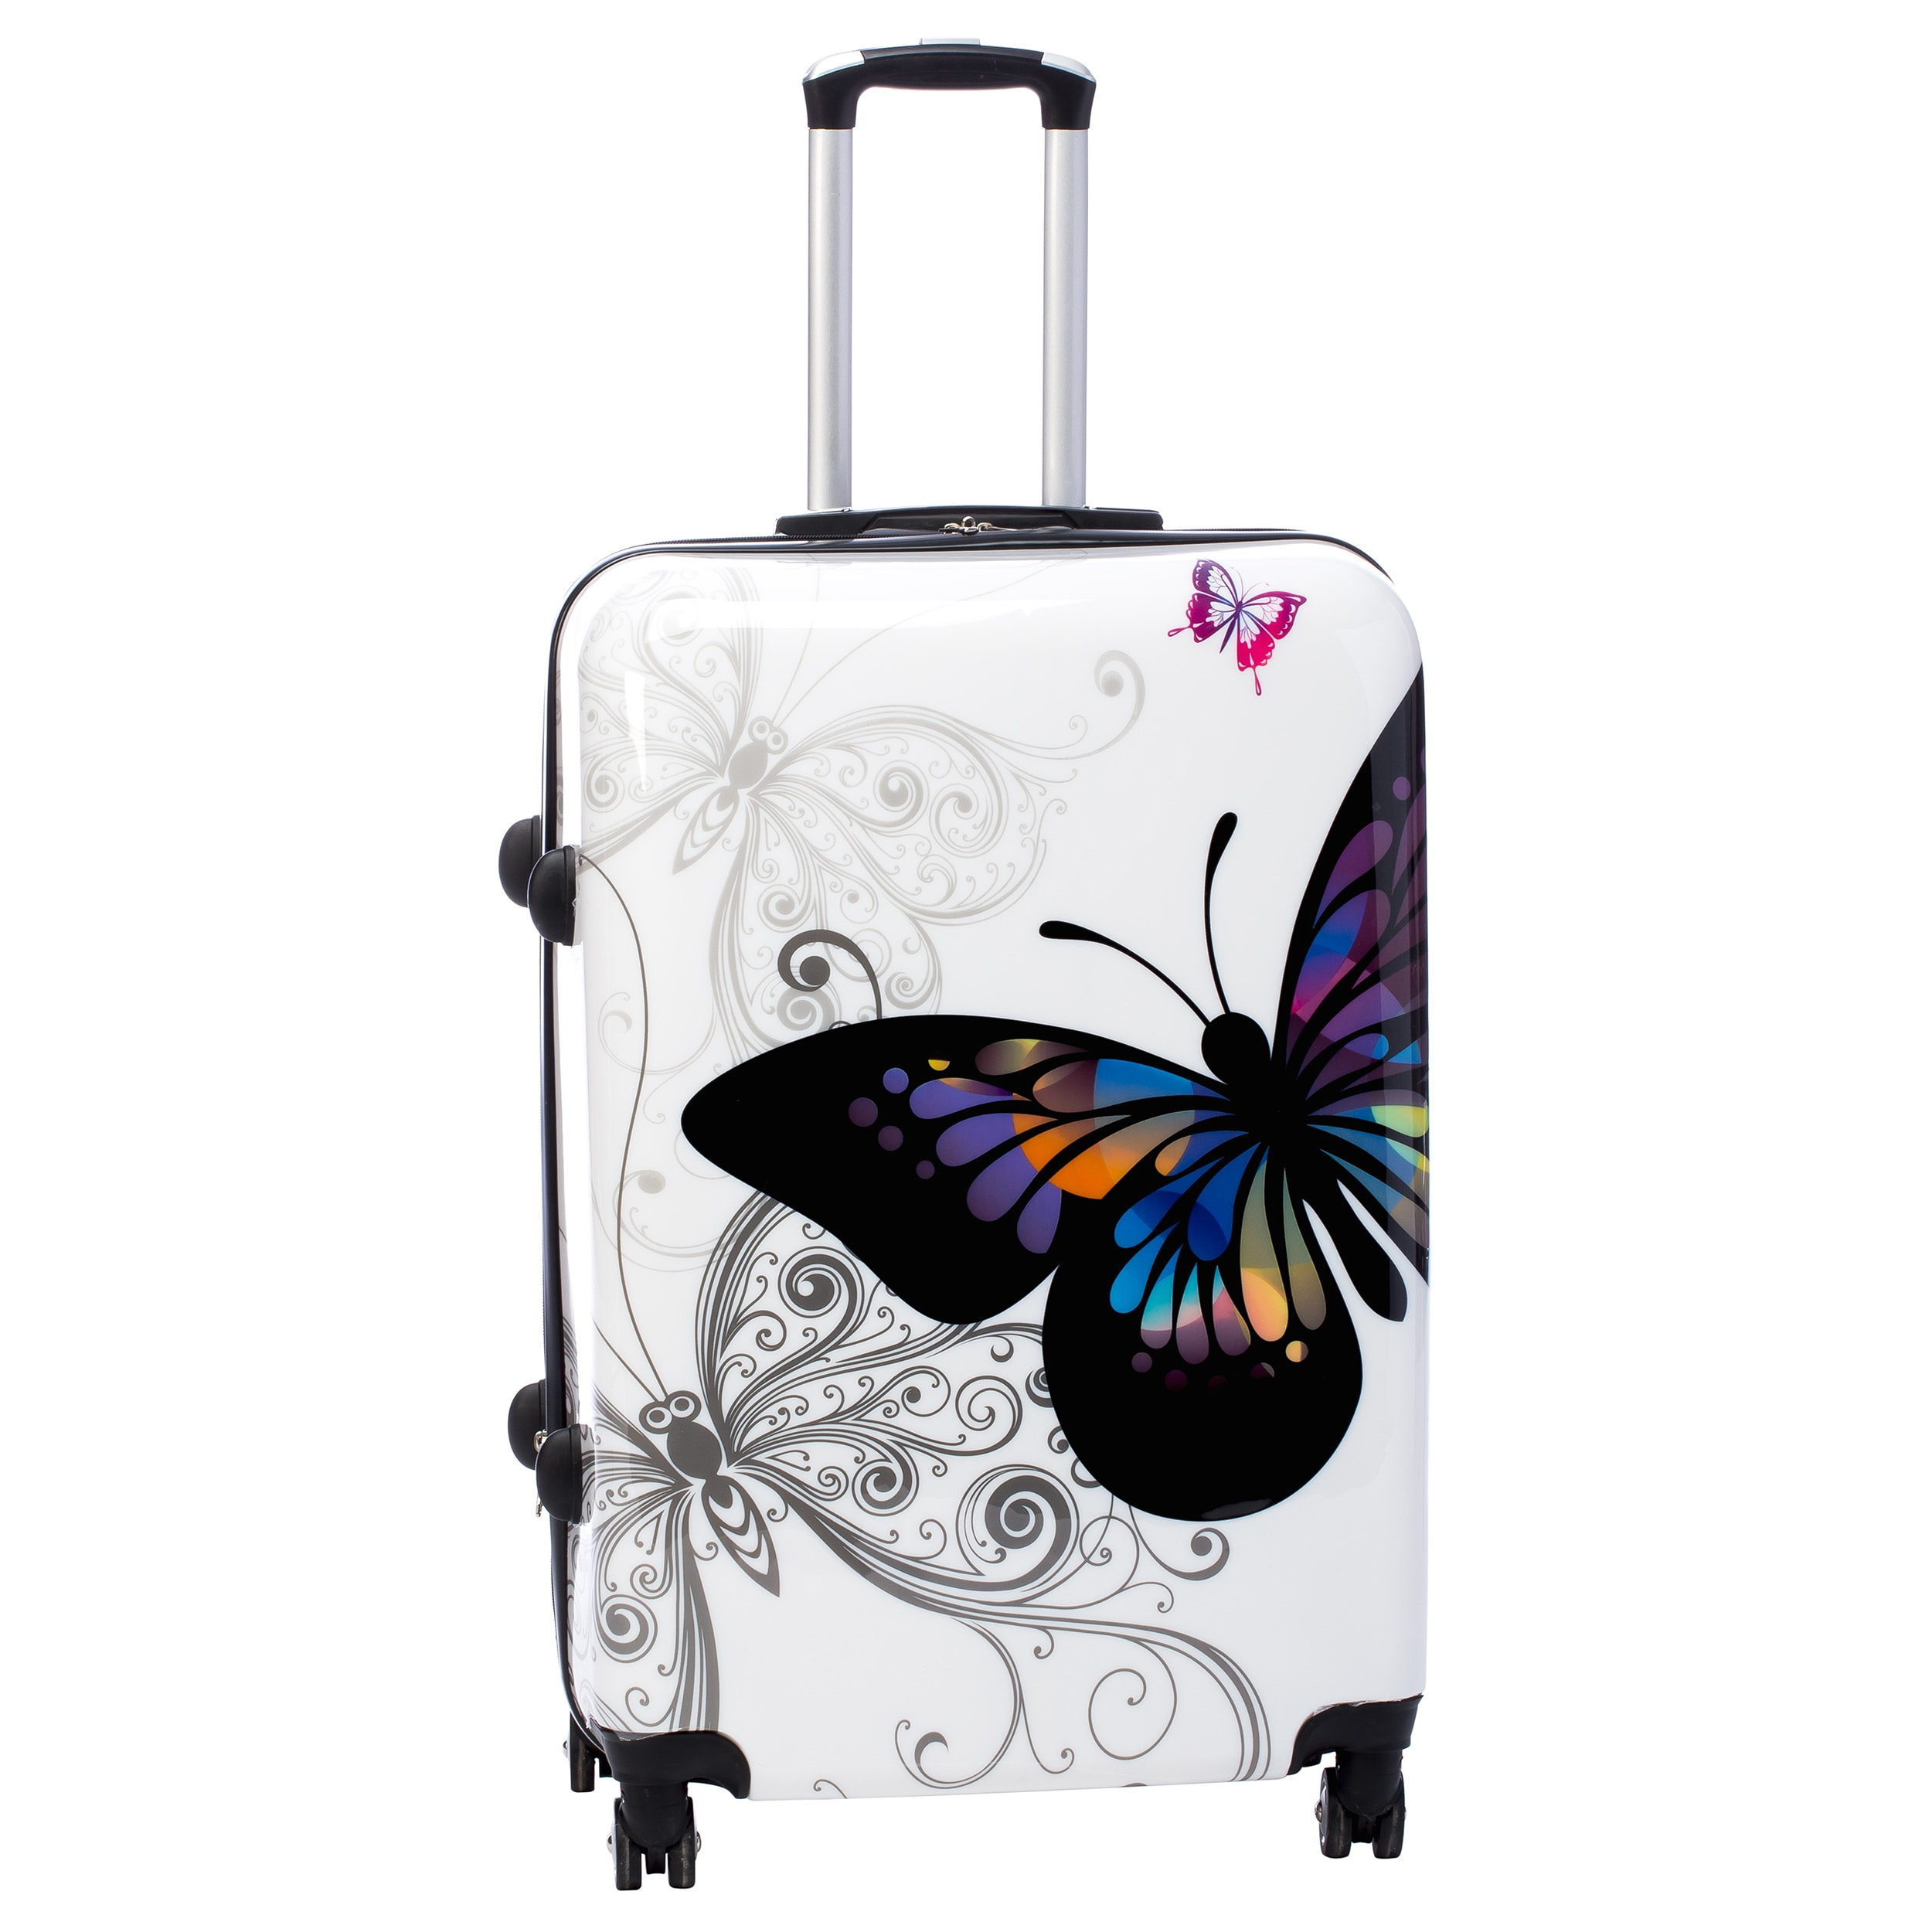 4f7bac6b69ac Shop World Traveler Butterfly 4-piece Hardside Spinner Luggage Set with TSA  Lock - Free Shipping Today - Overstock - 9489544